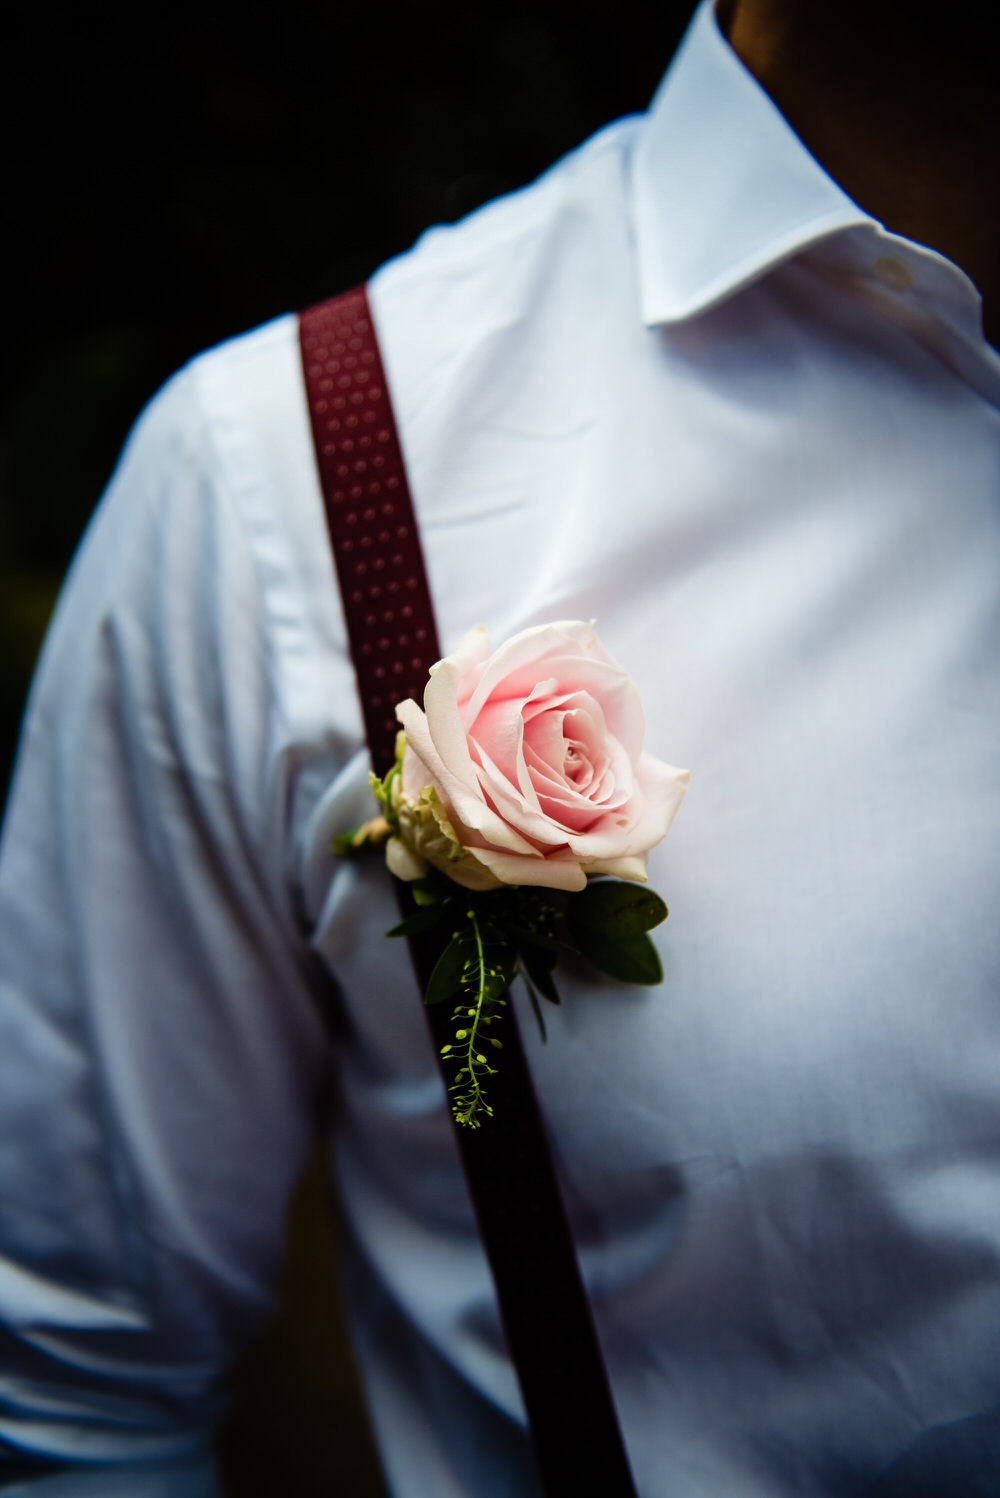 Groom Groomsmen Buttonhole Braces Pink Rose West Lexham Wedding James Powell Photography